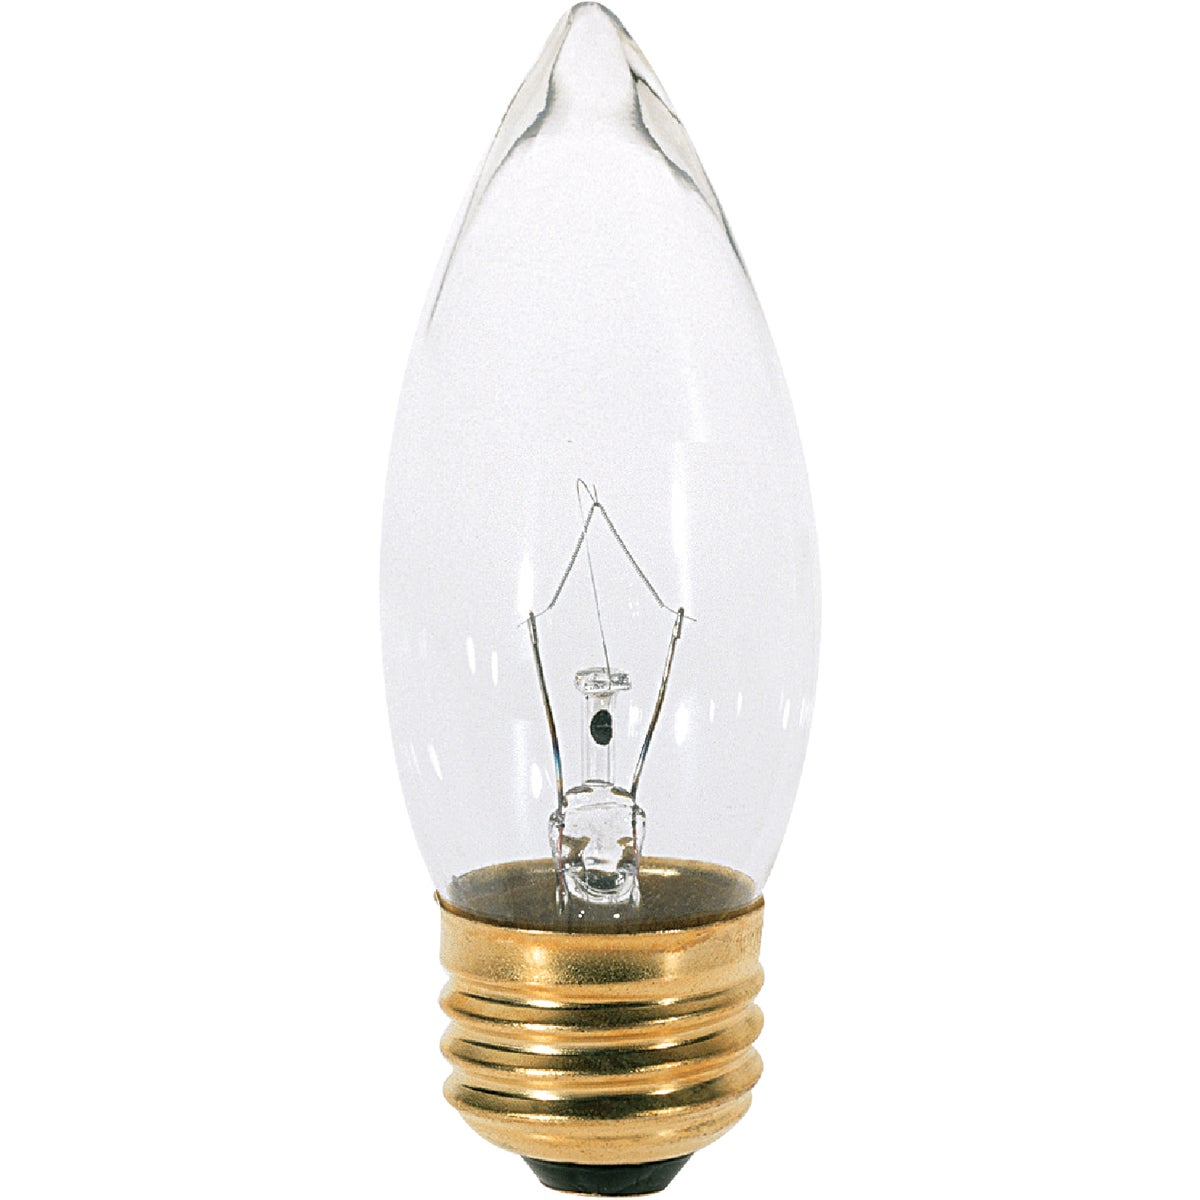 40W 2PK CLR CANDLE BULB - 12993 by G E Lighting